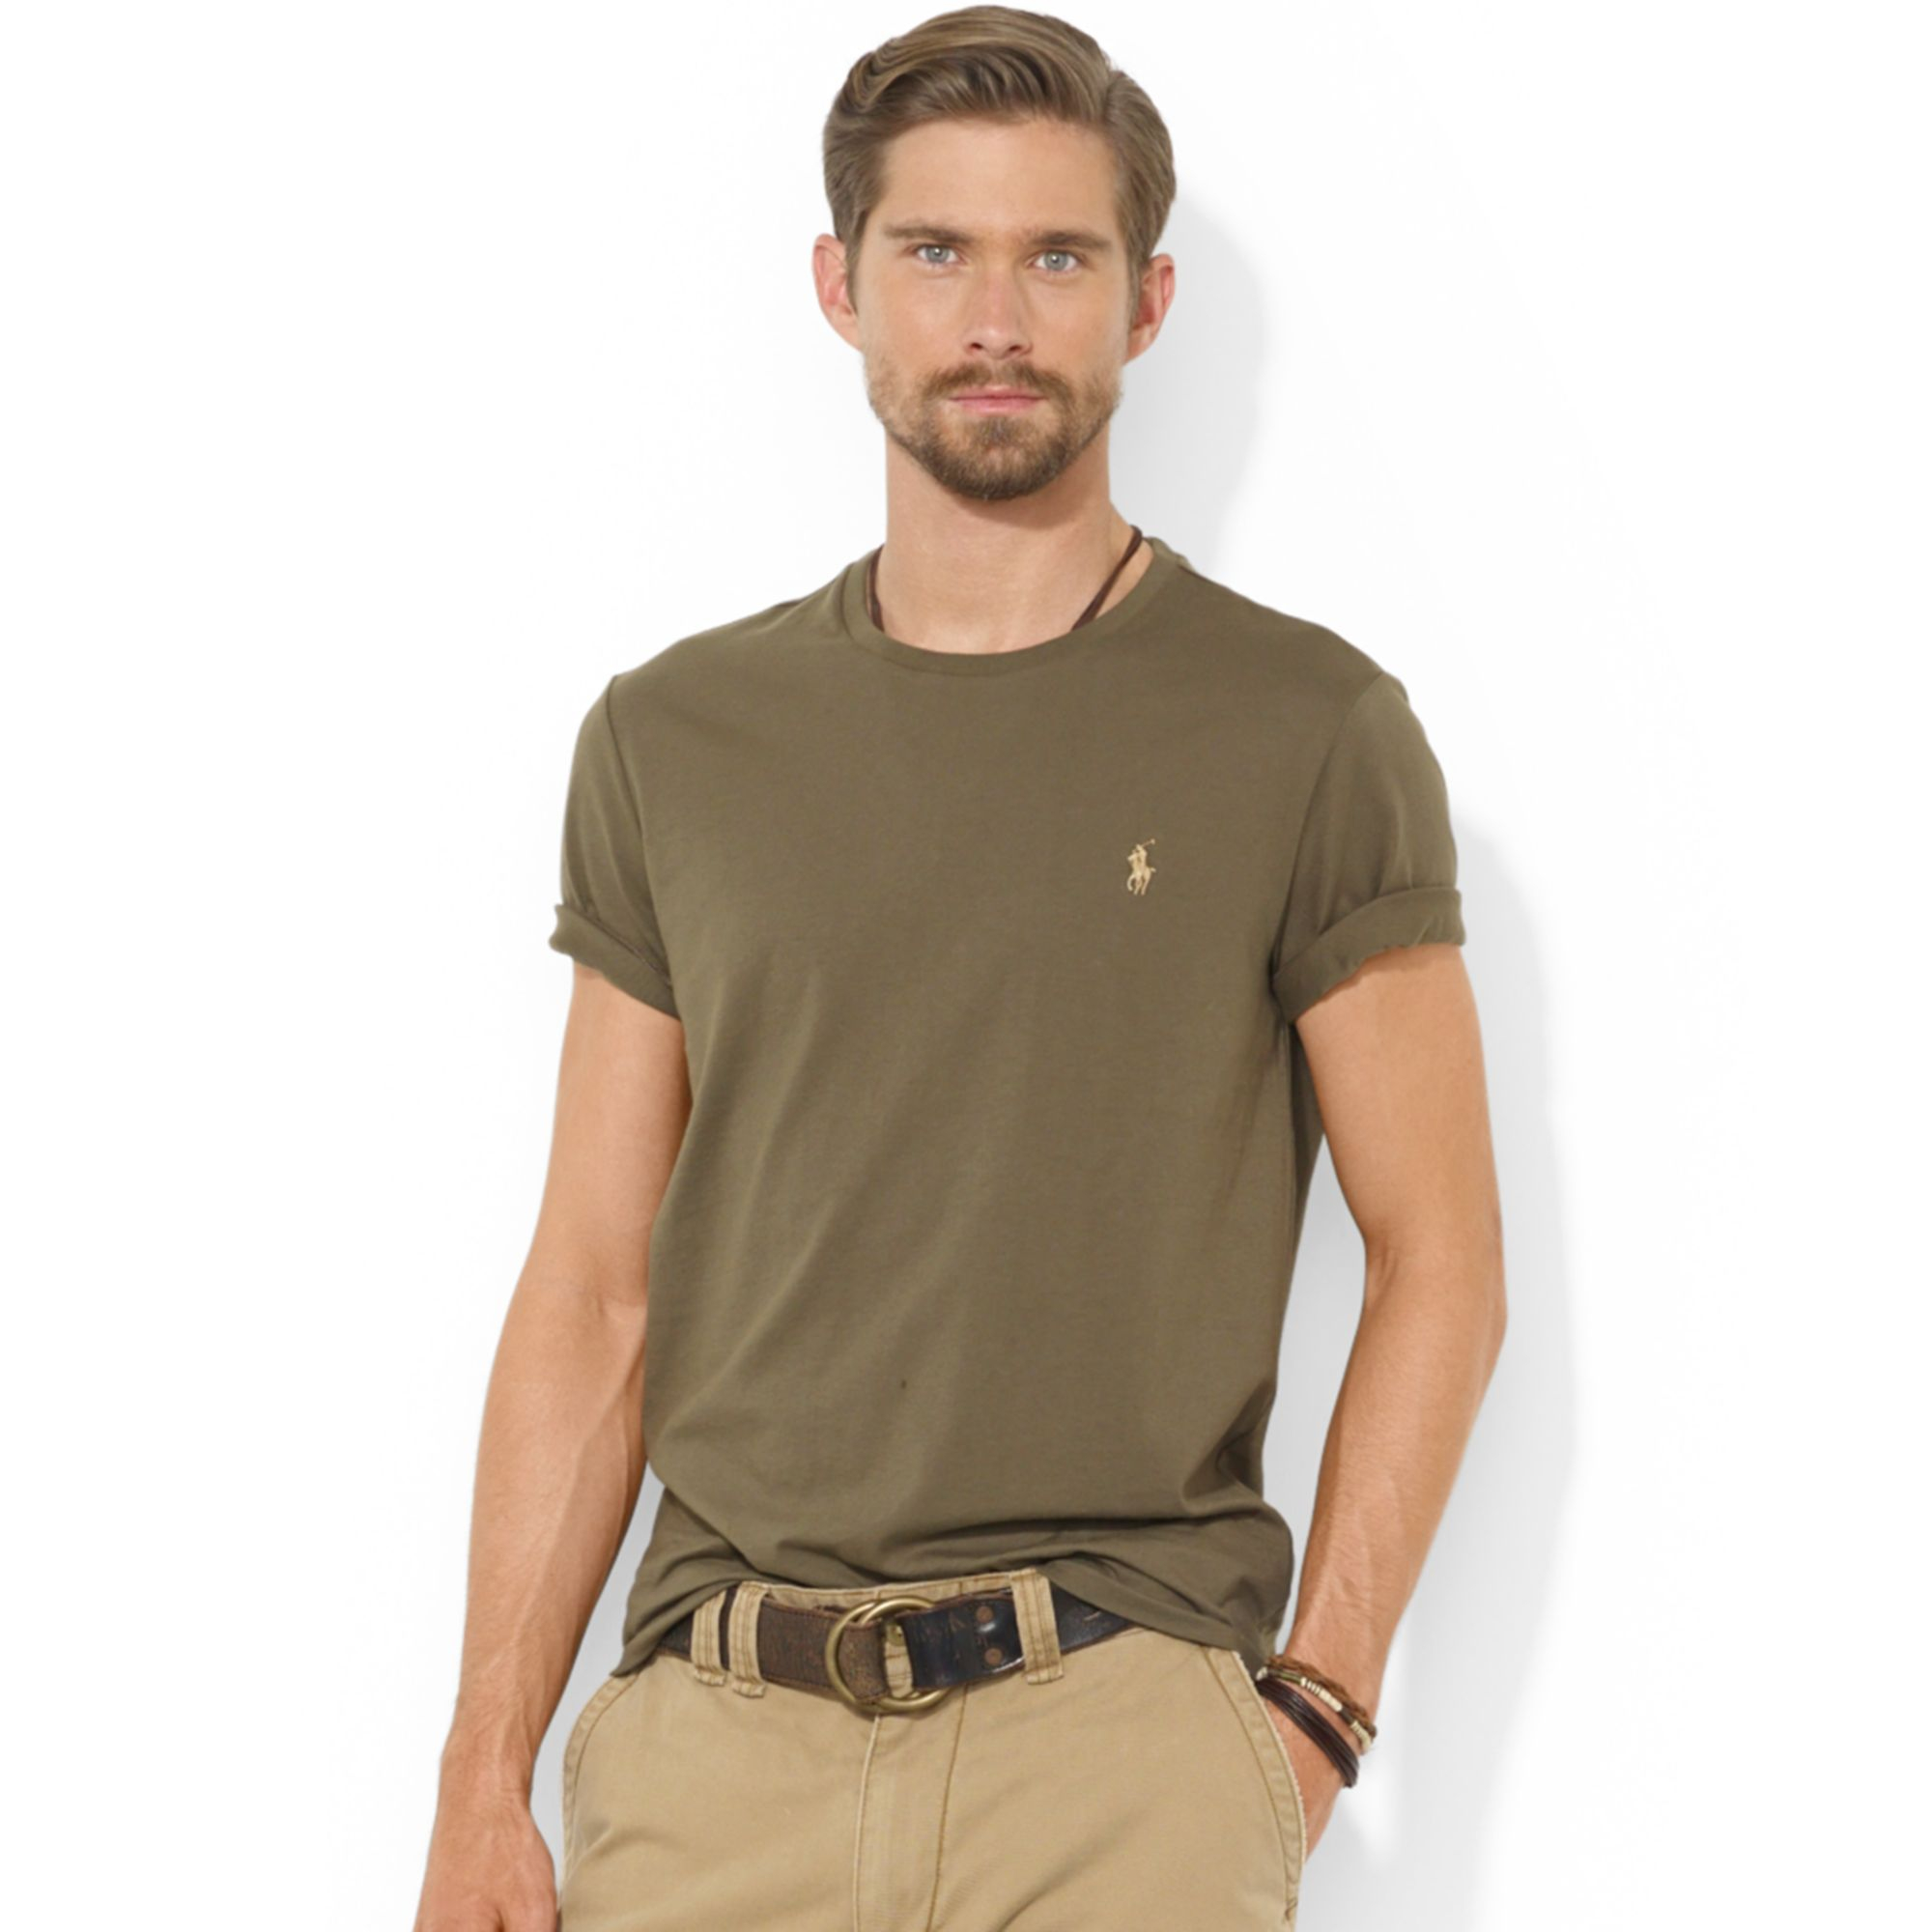 ralph lauren polo customfit cotton jersey t shirt in green for men lyst. Black Bedroom Furniture Sets. Home Design Ideas